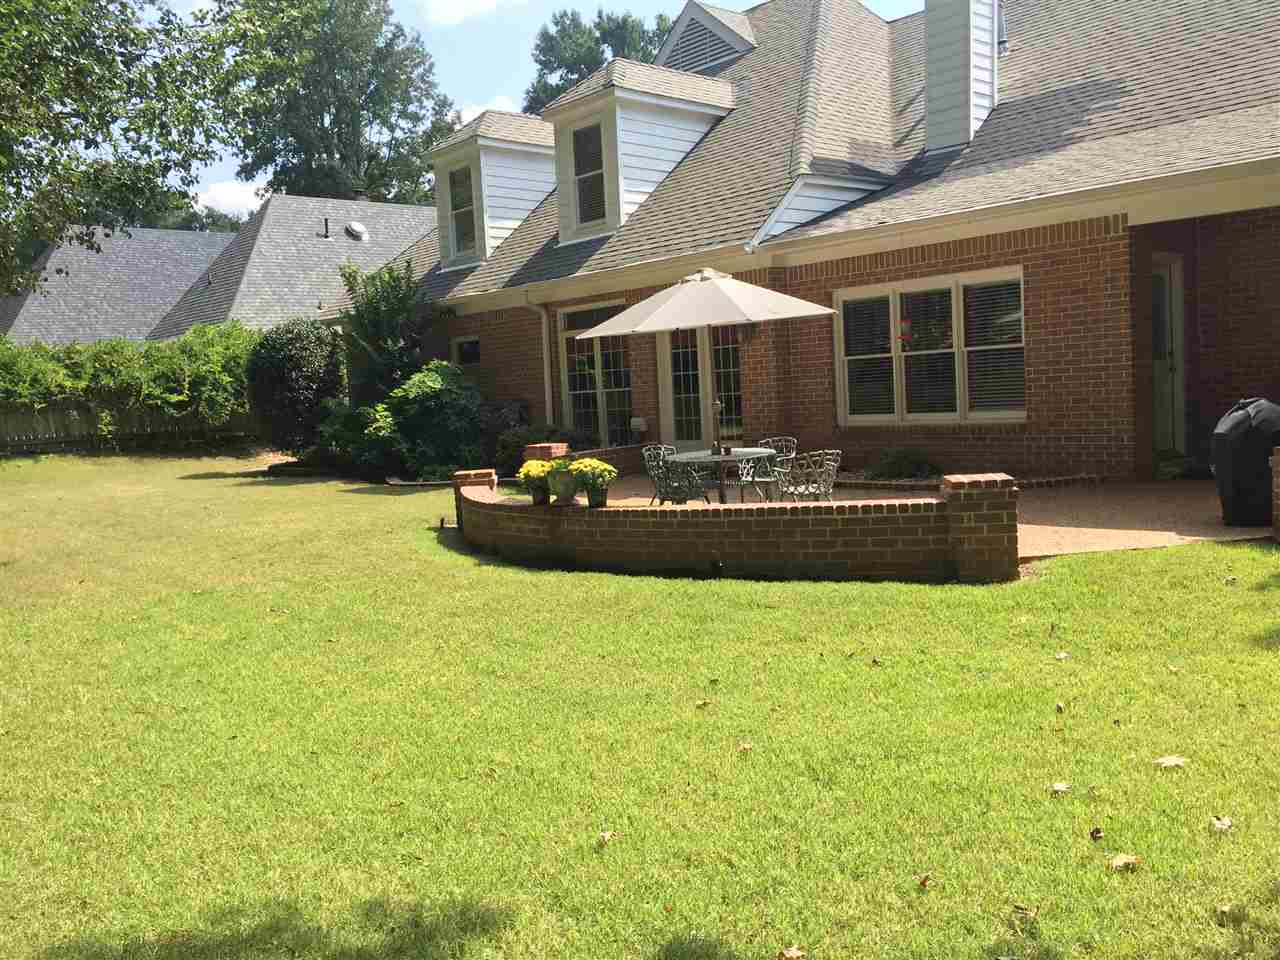 6692 N Kirby Oaks Memphis, TN 38119 - MLS #: 10011758